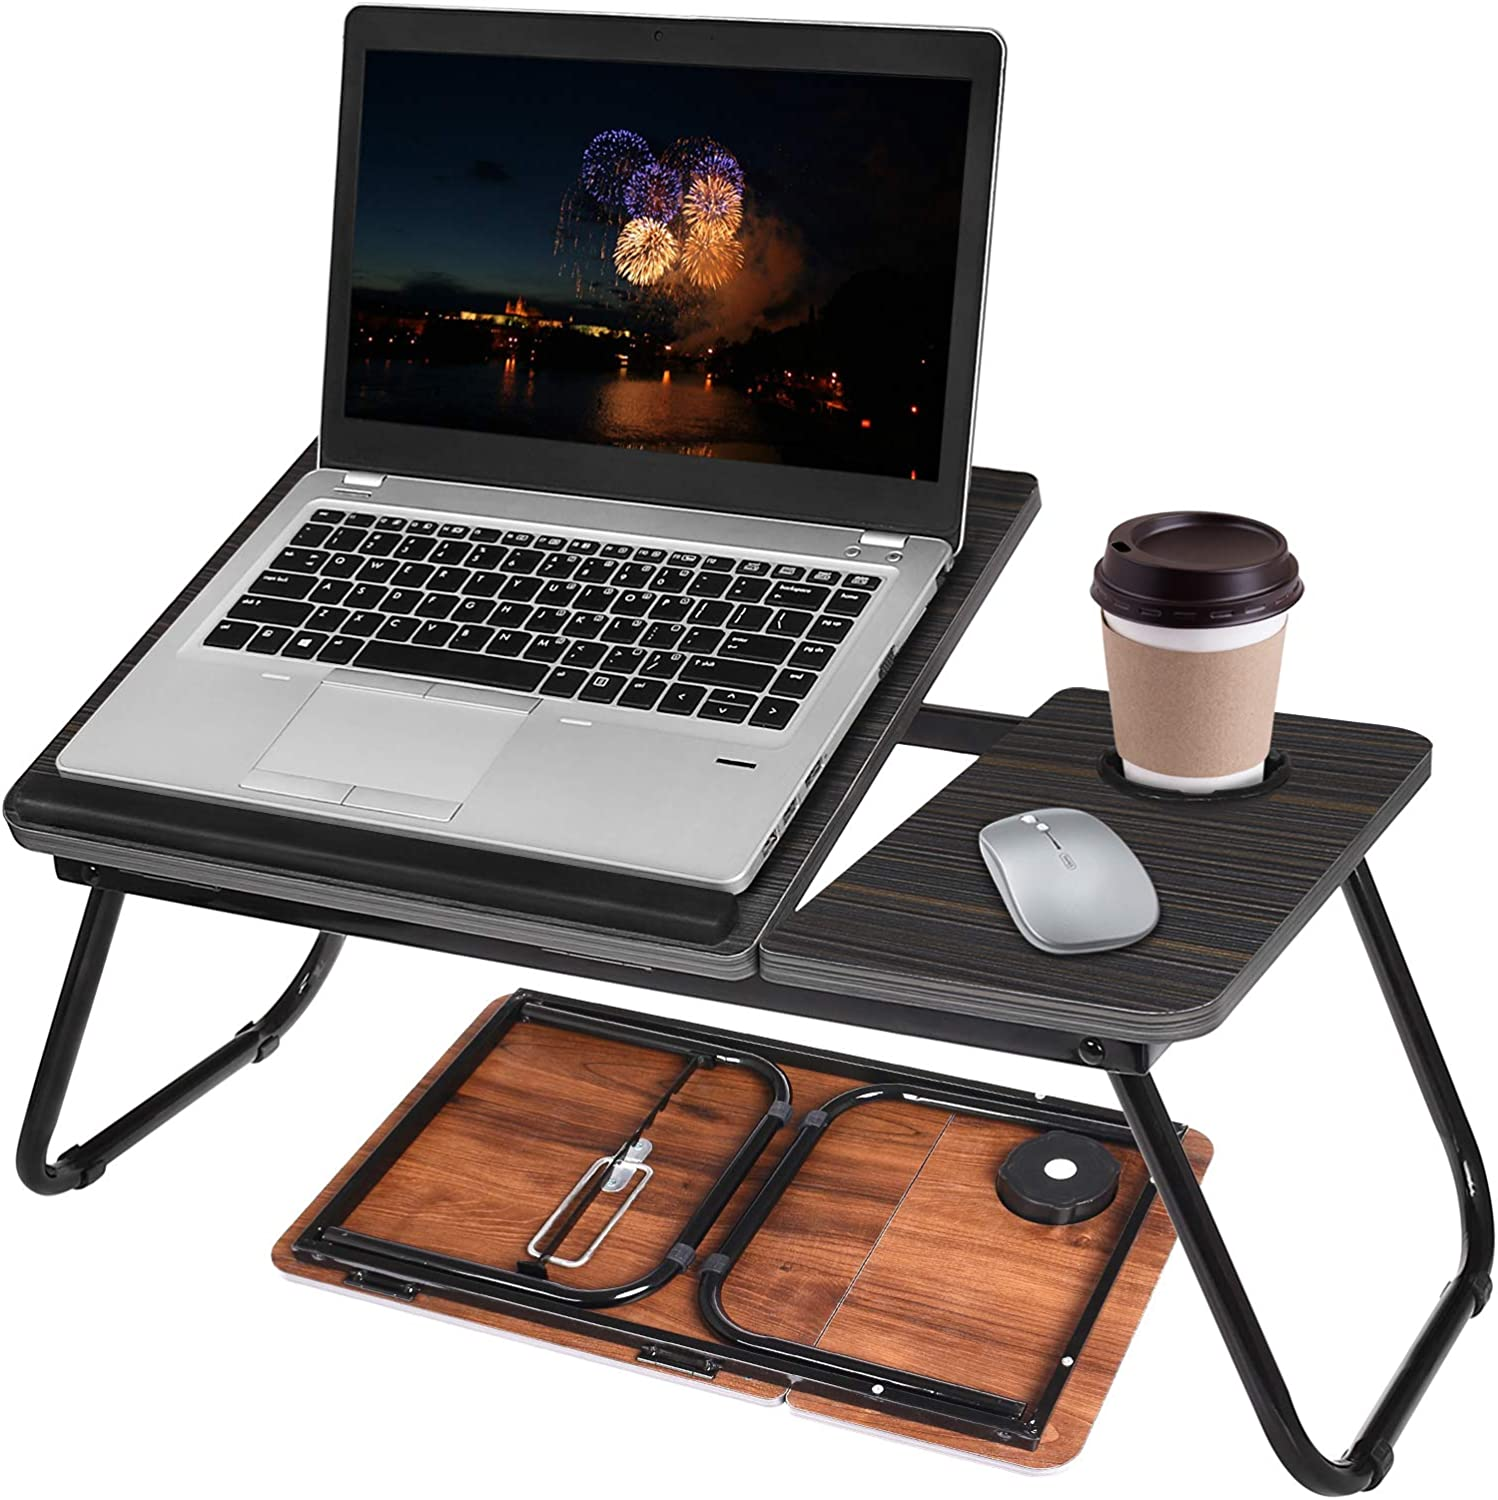 Lap Desk for Bed Adjustable Laptop Table Popular overseas Holde Cup Tray with shipfree